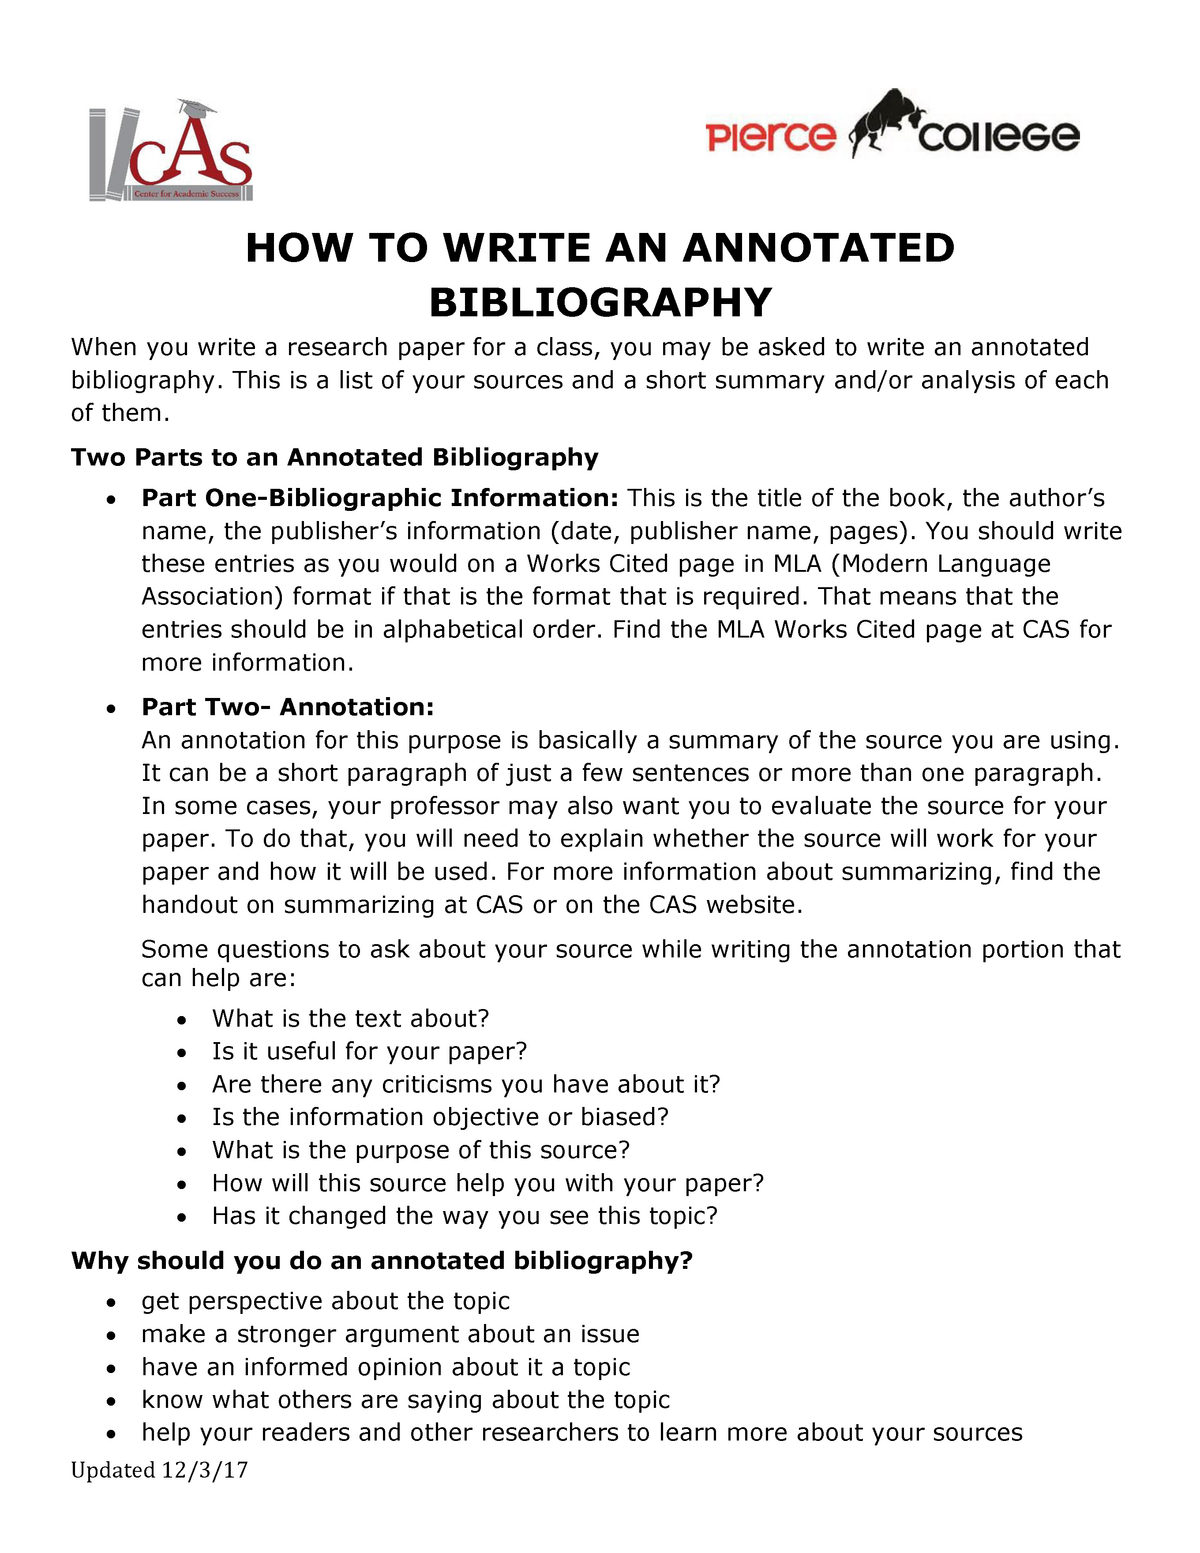 Do annotated bibliography research paper